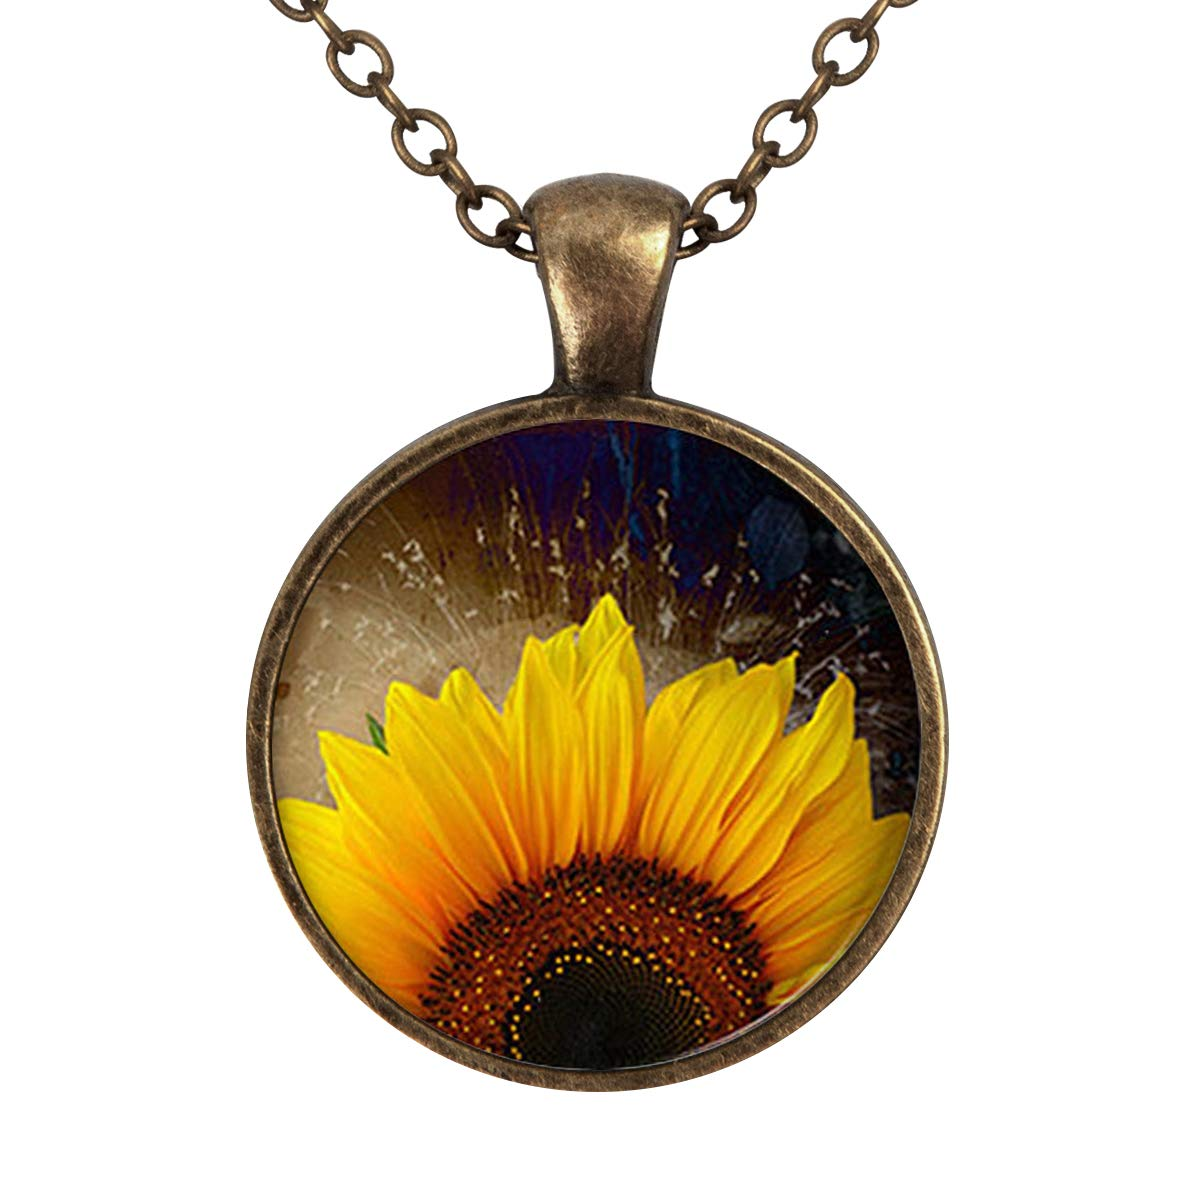 Lightrain Sunflower Pendant Necklace Vintage Bronze Chain Statement Necklace Handmade Jewelry Gifts